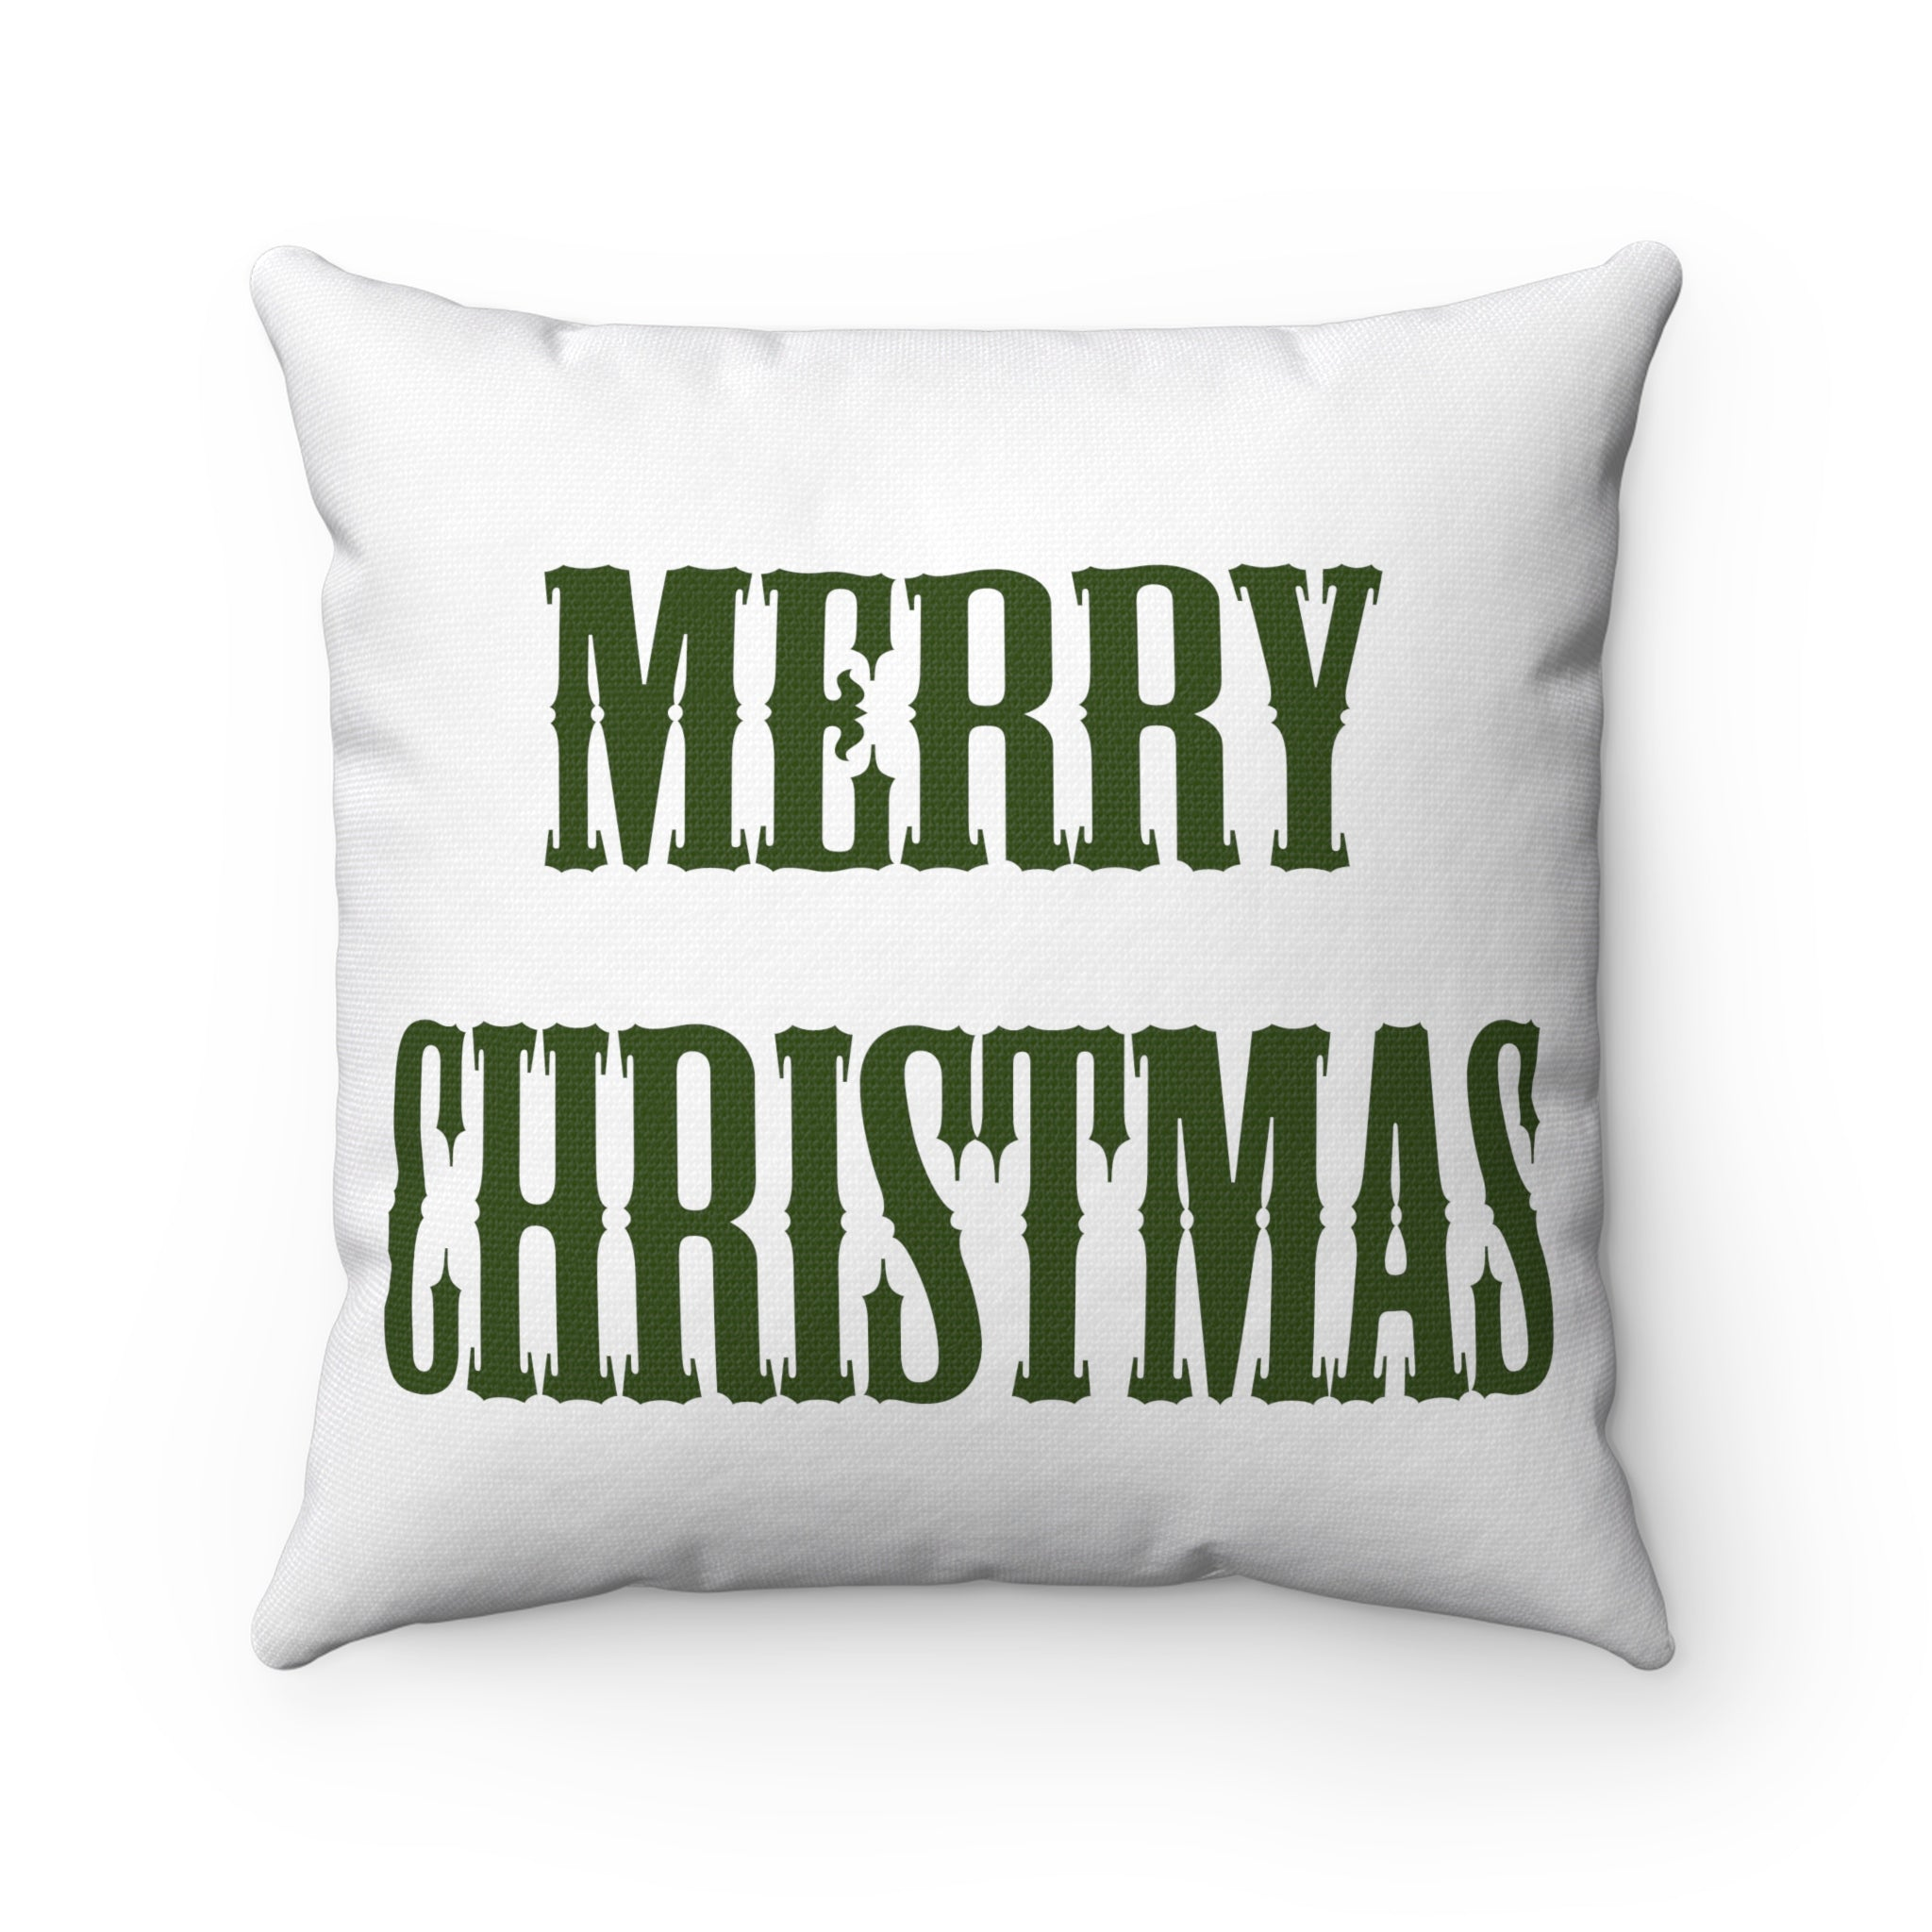 Green and white merry christmas square pillow